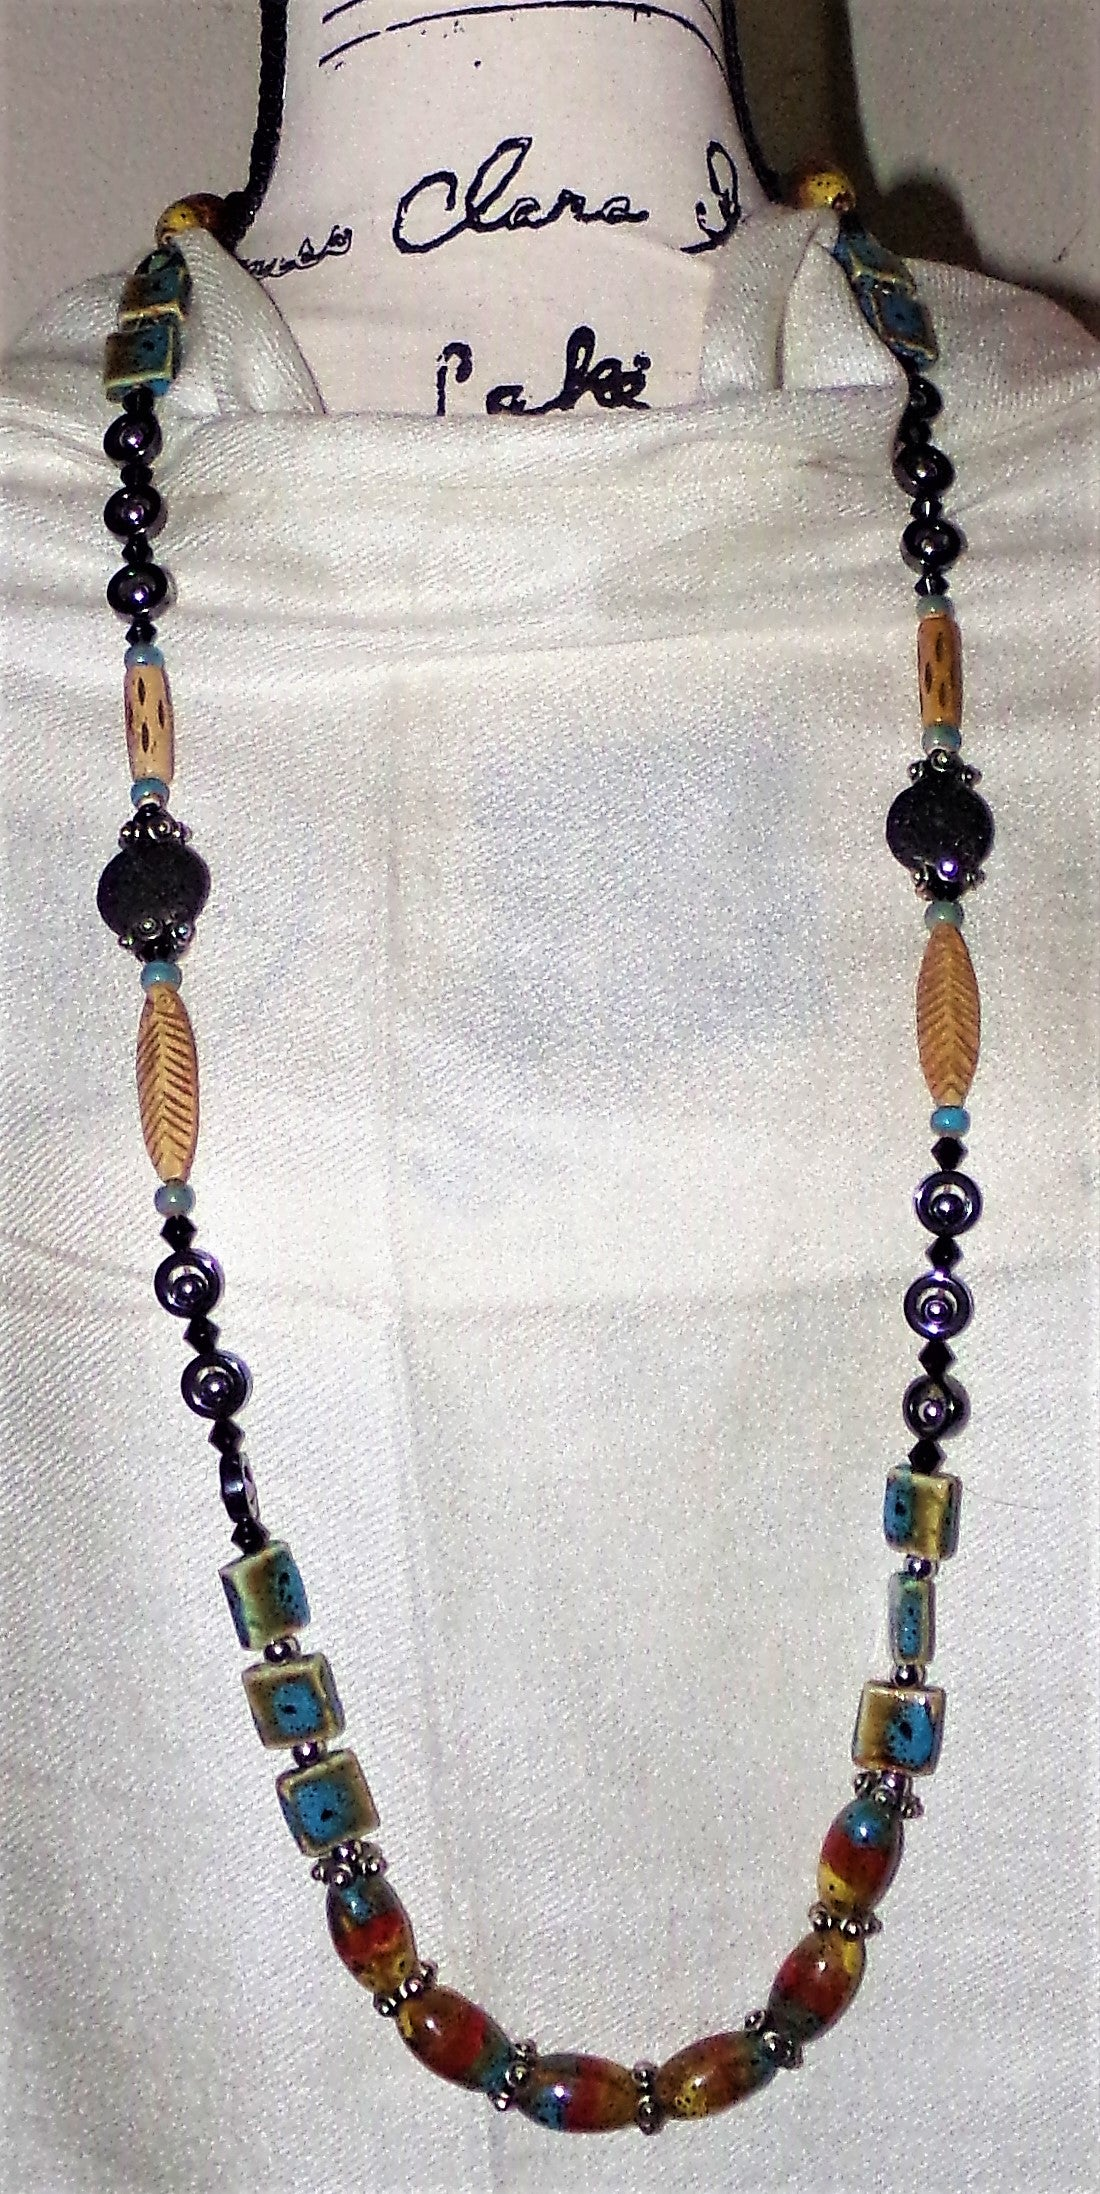 "Hand Glazed Ceramic,Buffalo Bone, Hawaiin Lava Beads, Hematite and Stainless Steel Statement 40"" Aromatherapy Strand Necklace"